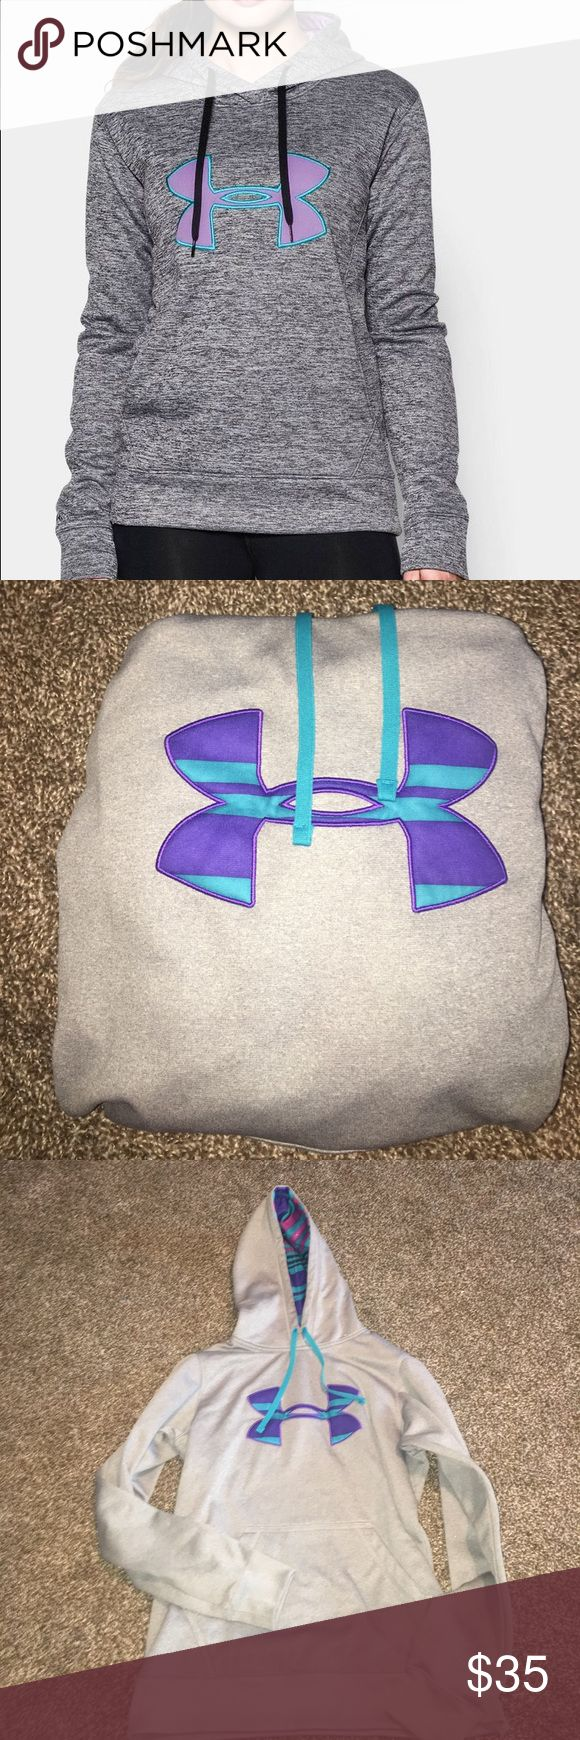 """under armour loose women's hoodie gray purple blue this hoodie is in perfect condition, only worn once. """"loose"""" fitted Under Armour Tops Sweatshirts & Hoodies"""